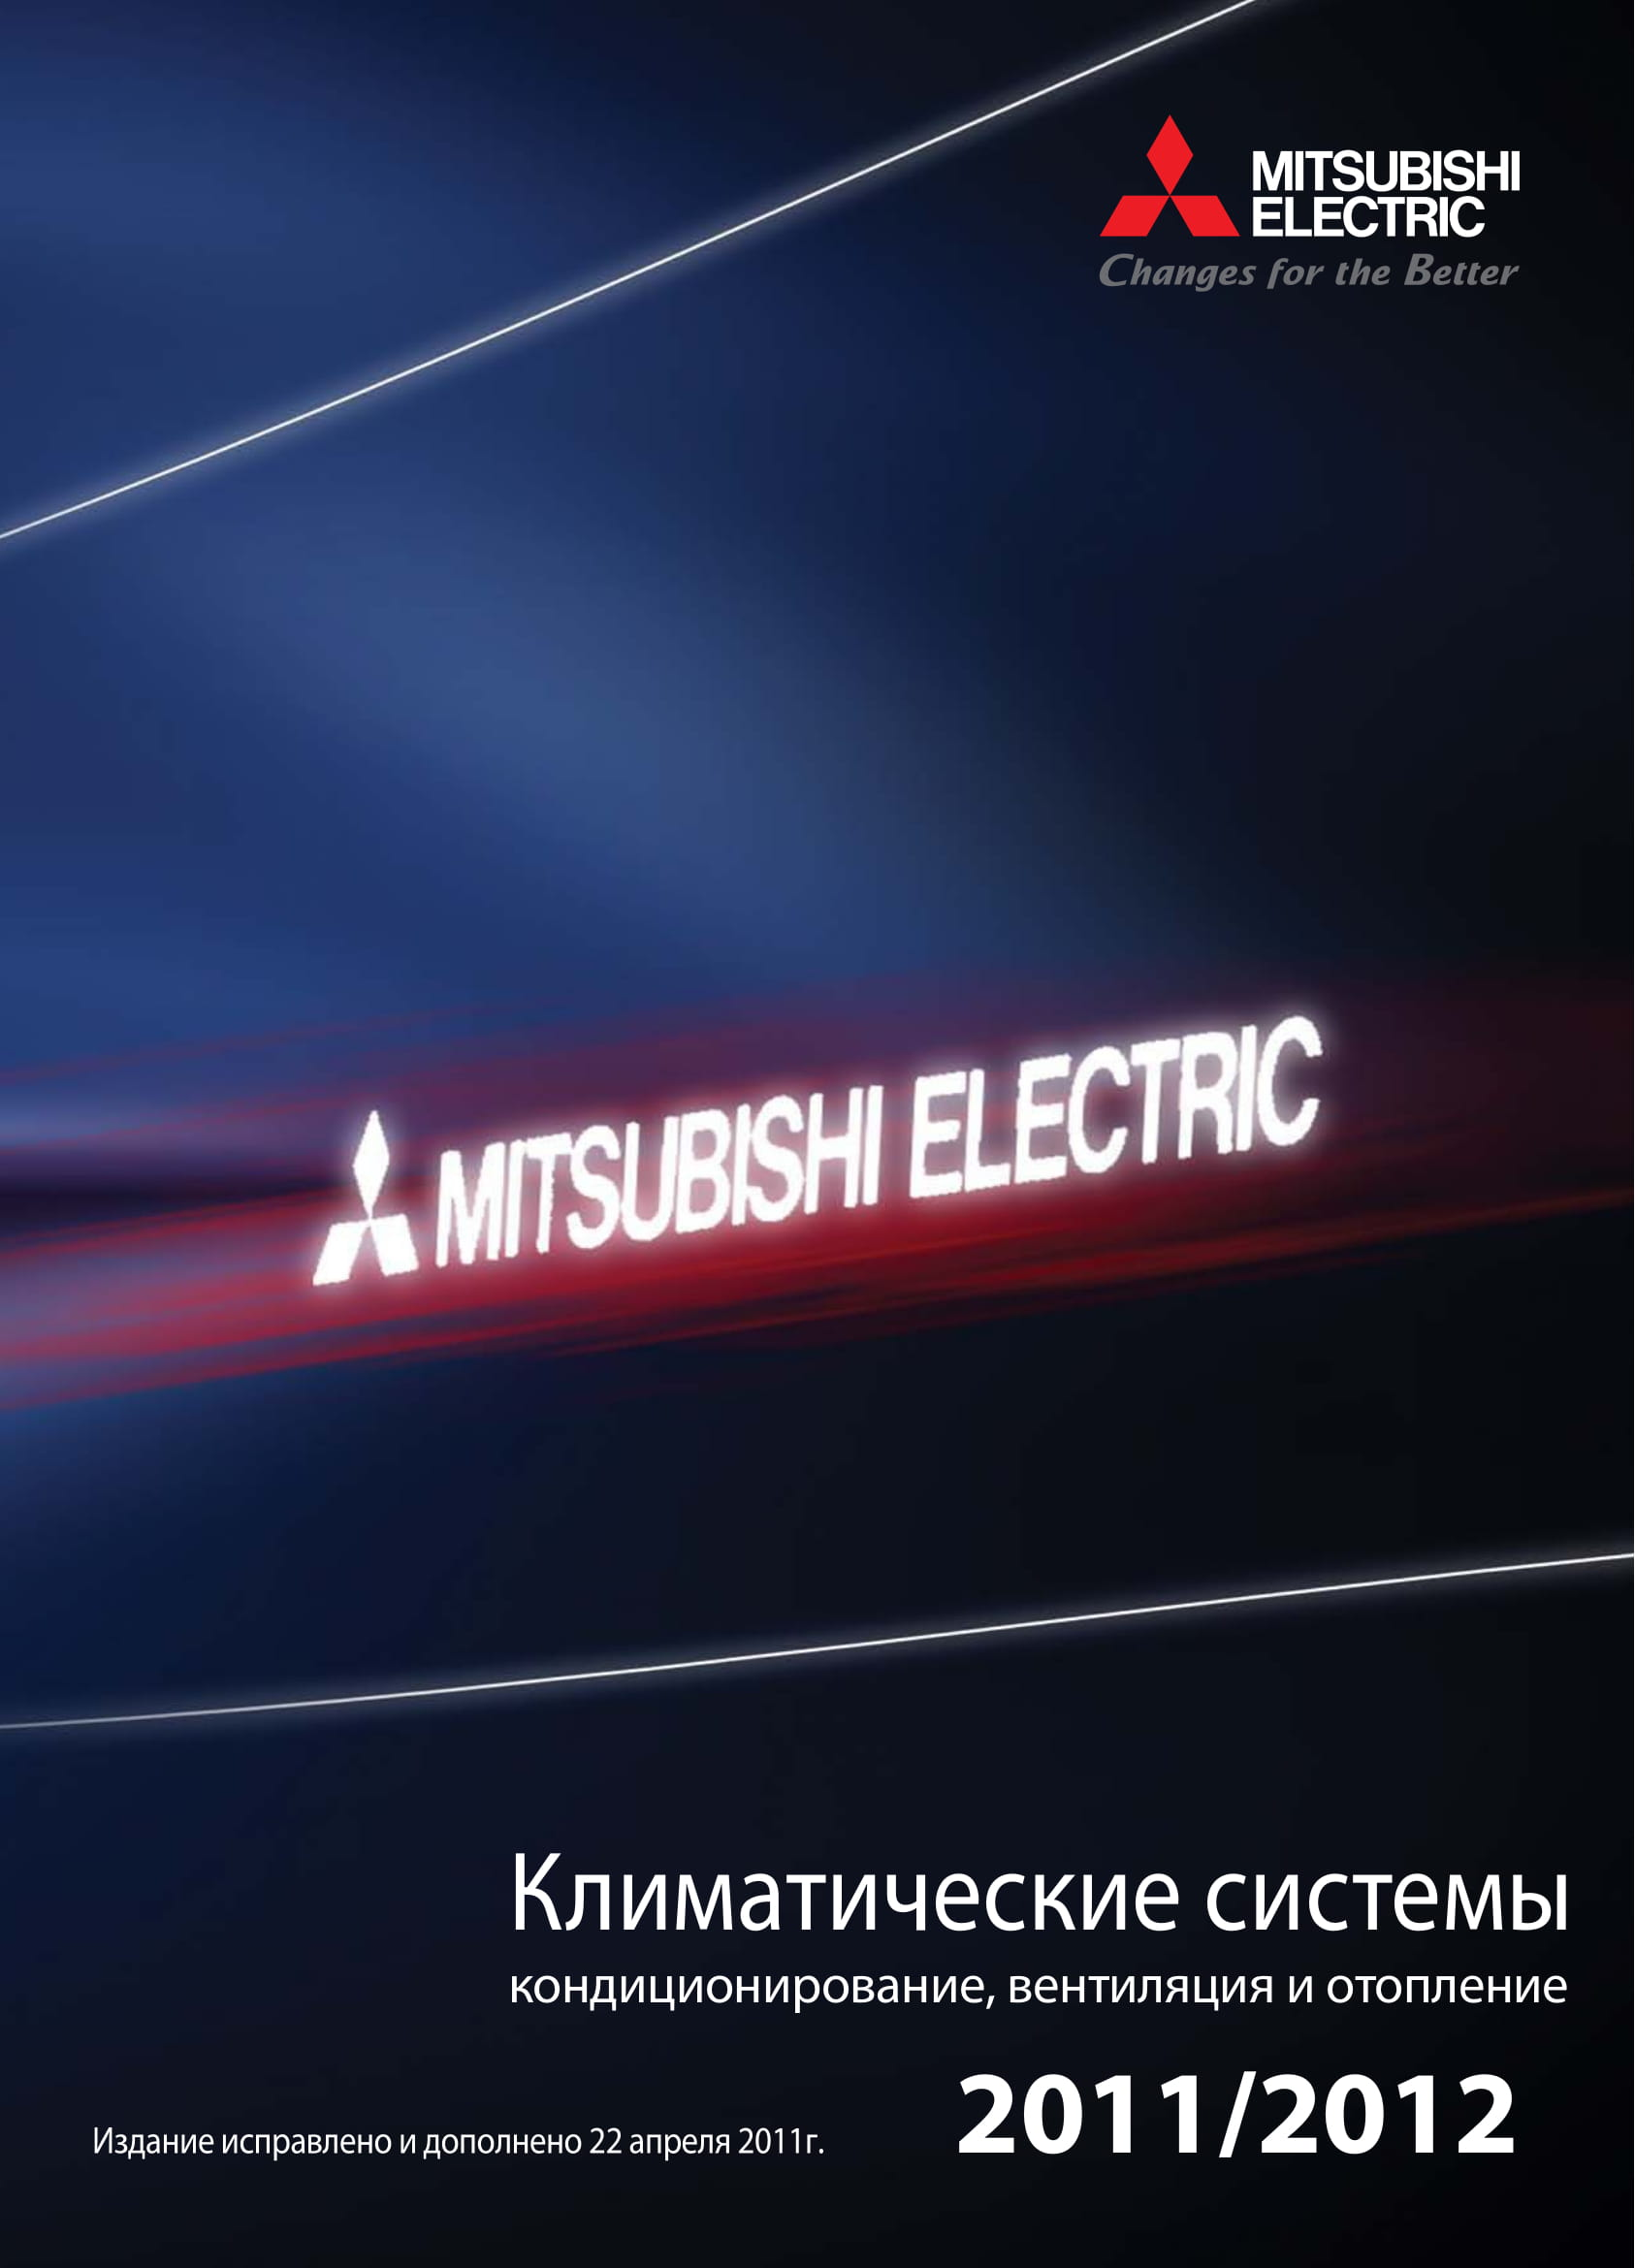 каталог Mitsubishi Electric 2011-2012